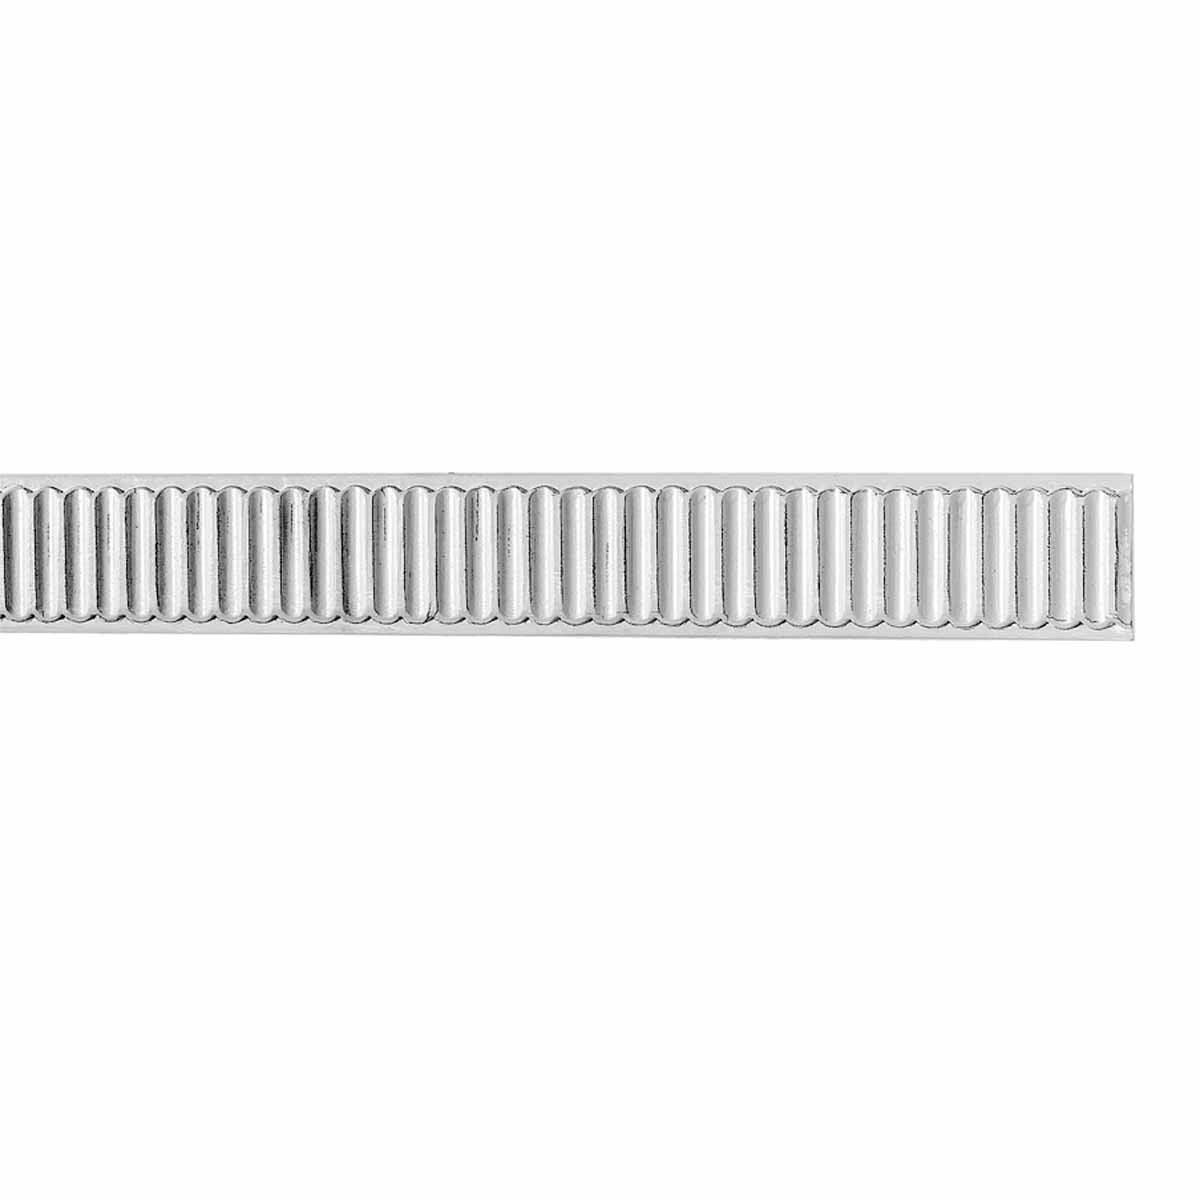 Renovator's Supply Chair Rail White Urethane Molding Railing Design 8 Pieces Totaling 628'' Length